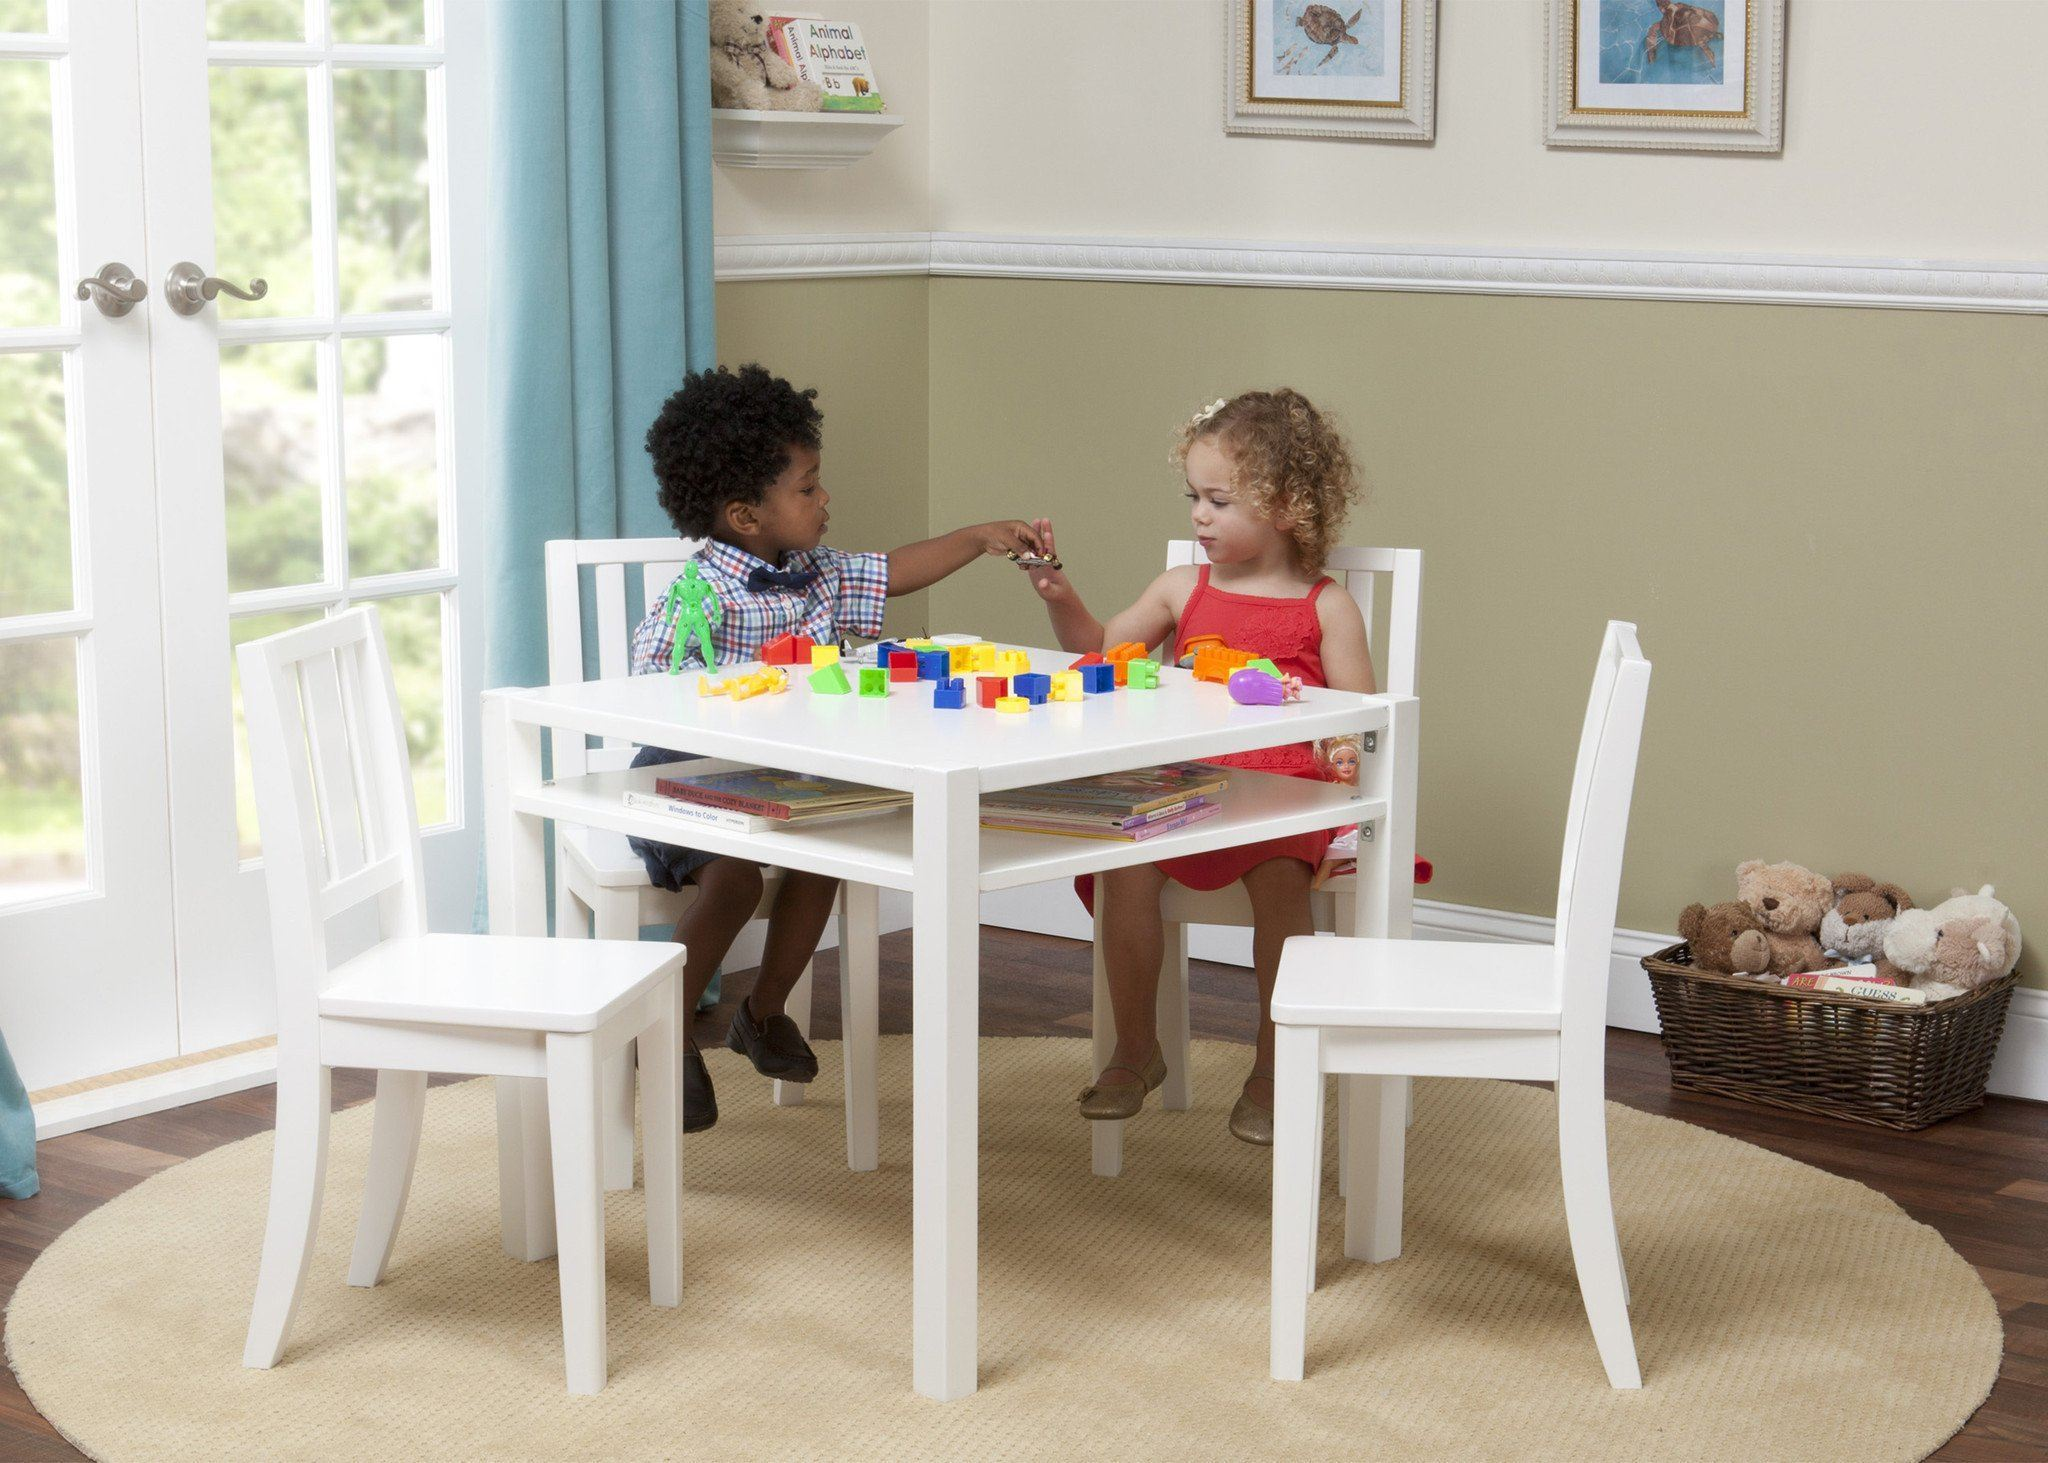 ... Delta Children White (100) Wood Table And Chair W Models B1b